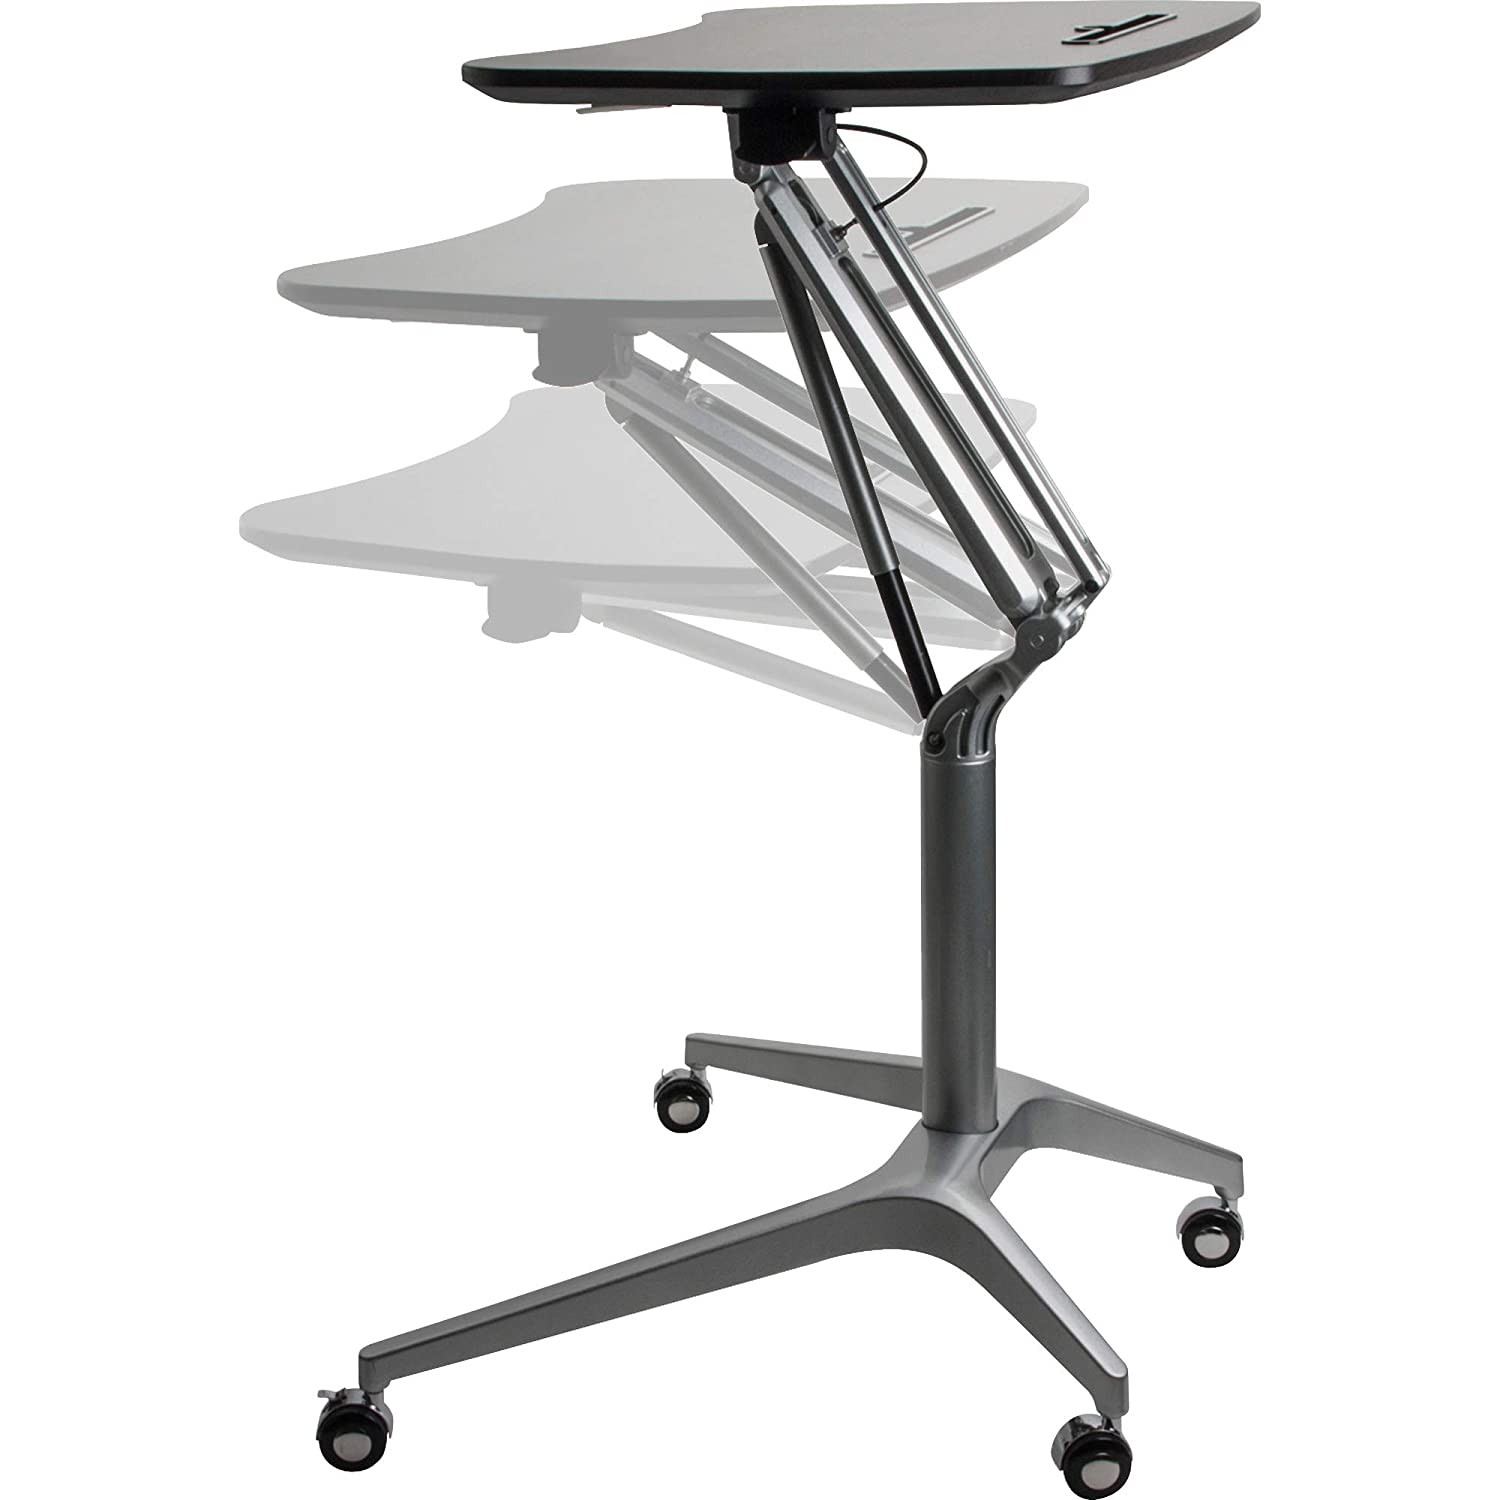 Lorell Active Office Laptop Table, Powder Coated,Black